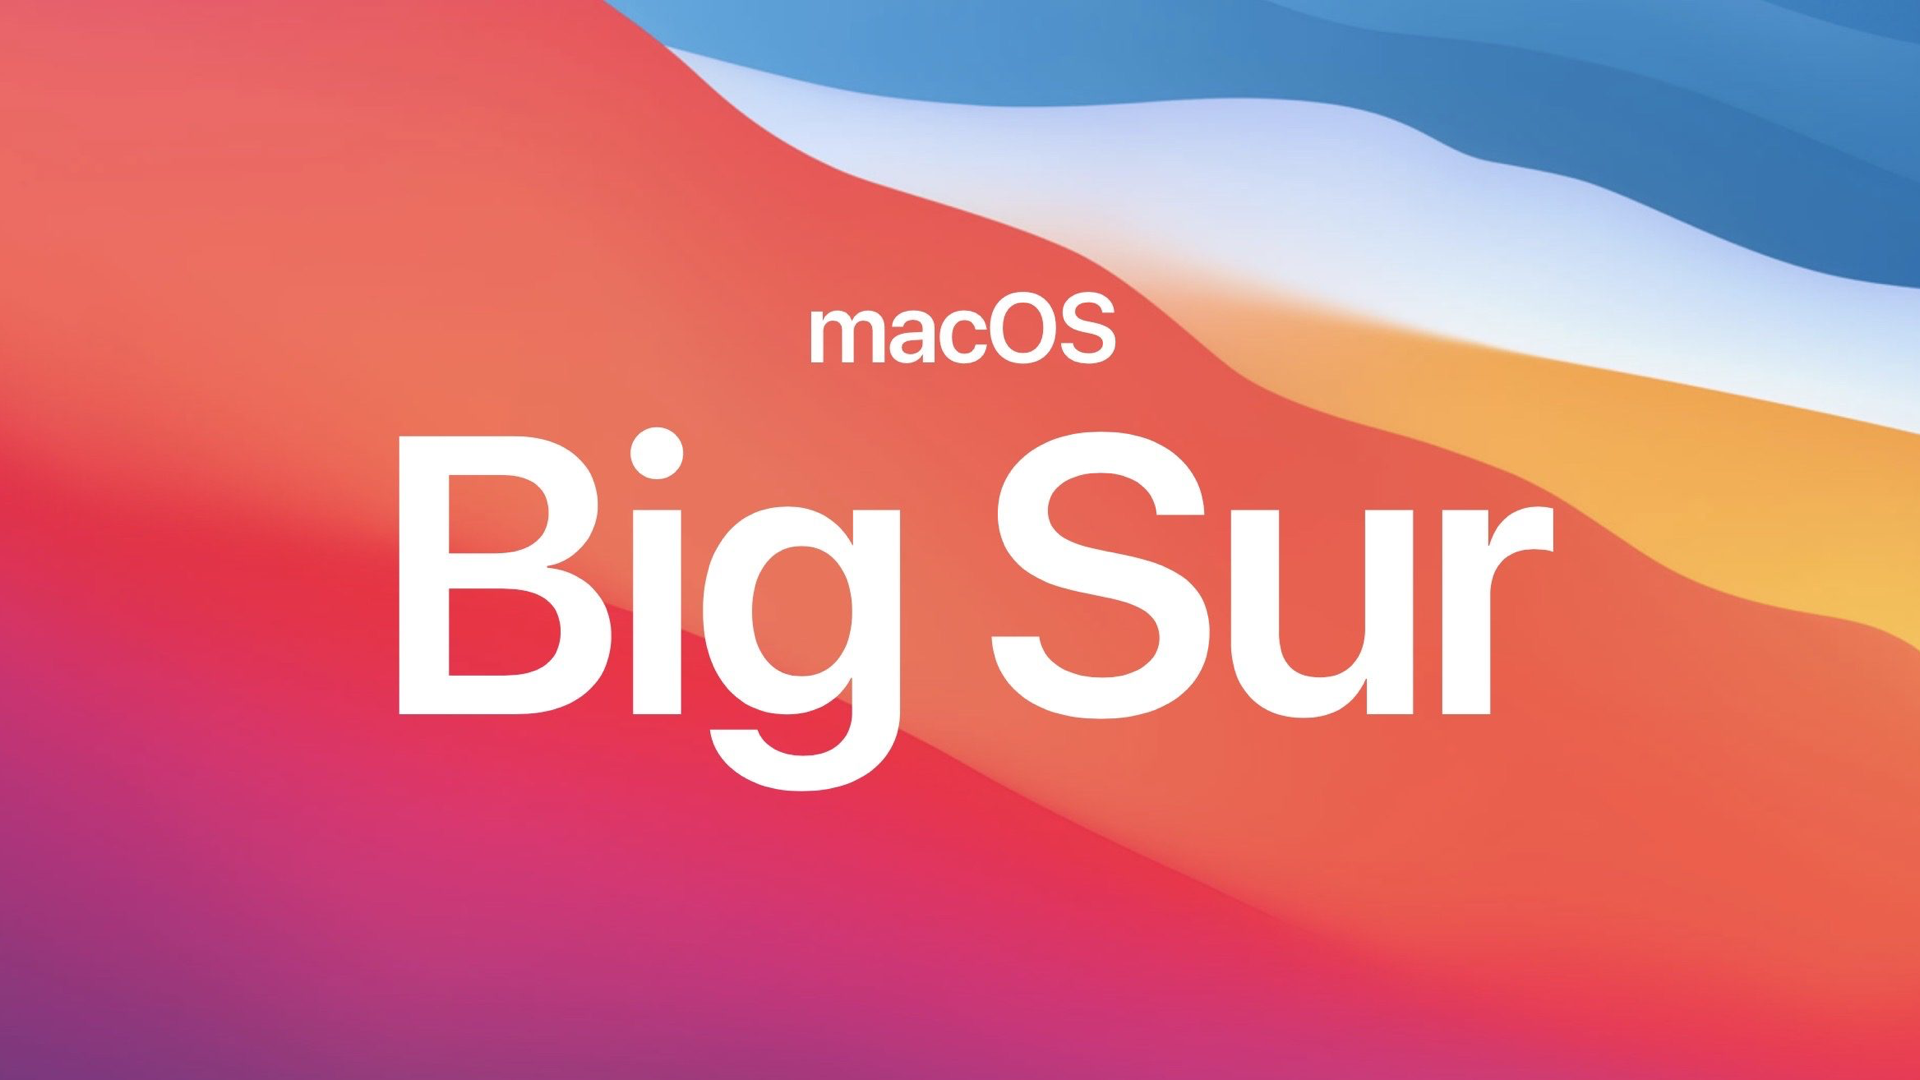 macOS Big Sur is being released today!